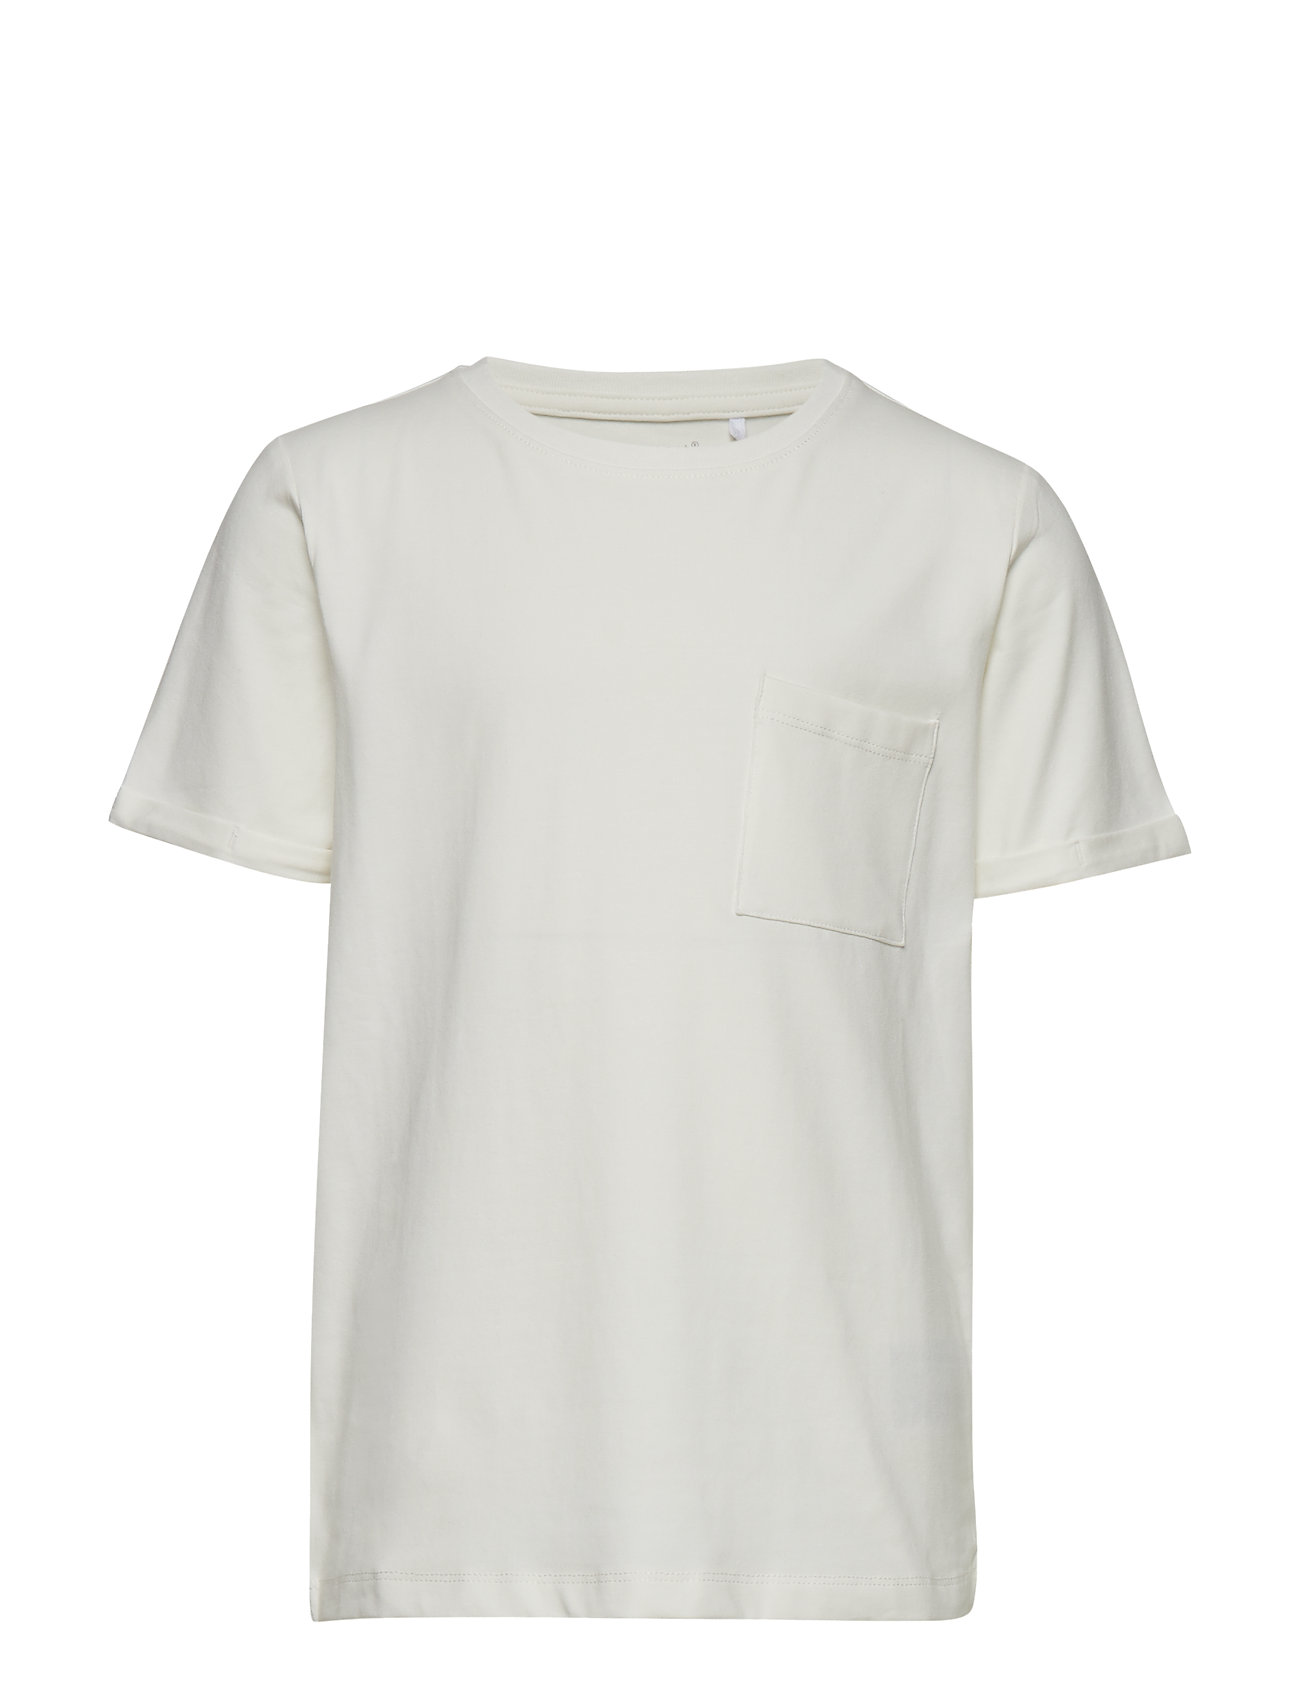 Image of Nkmvester Ss Top Noos T-shirt Hvid NAME IT (2923023755)